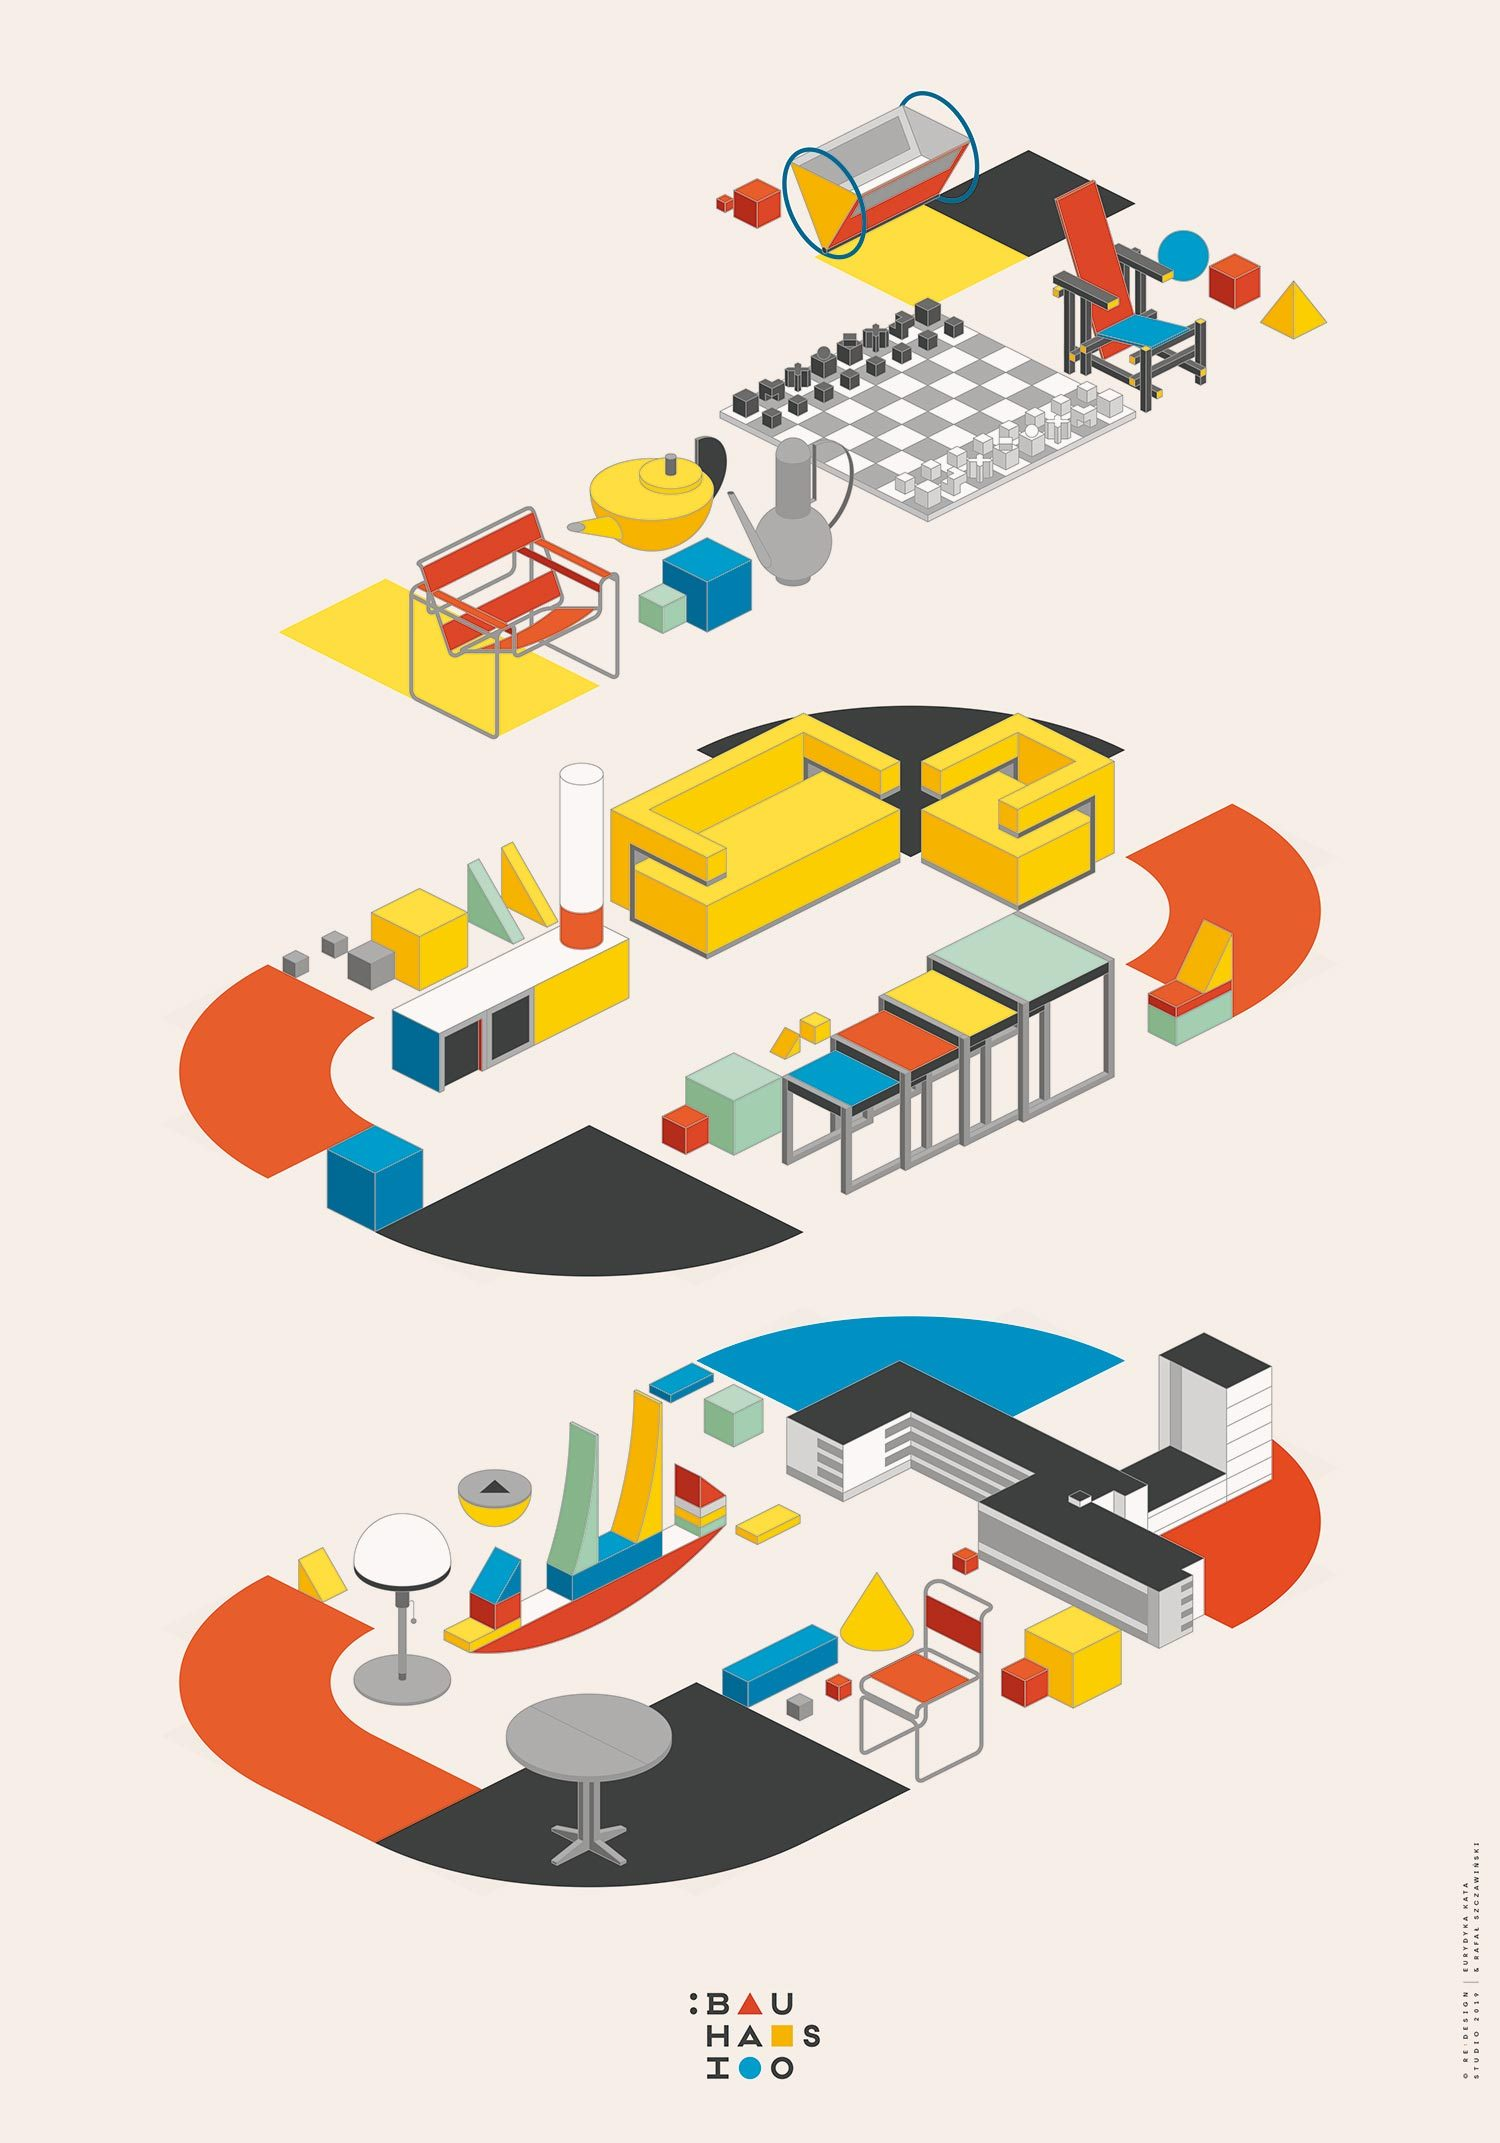 re:design Celebrates Bauhaus 100 with Illustrated Posters